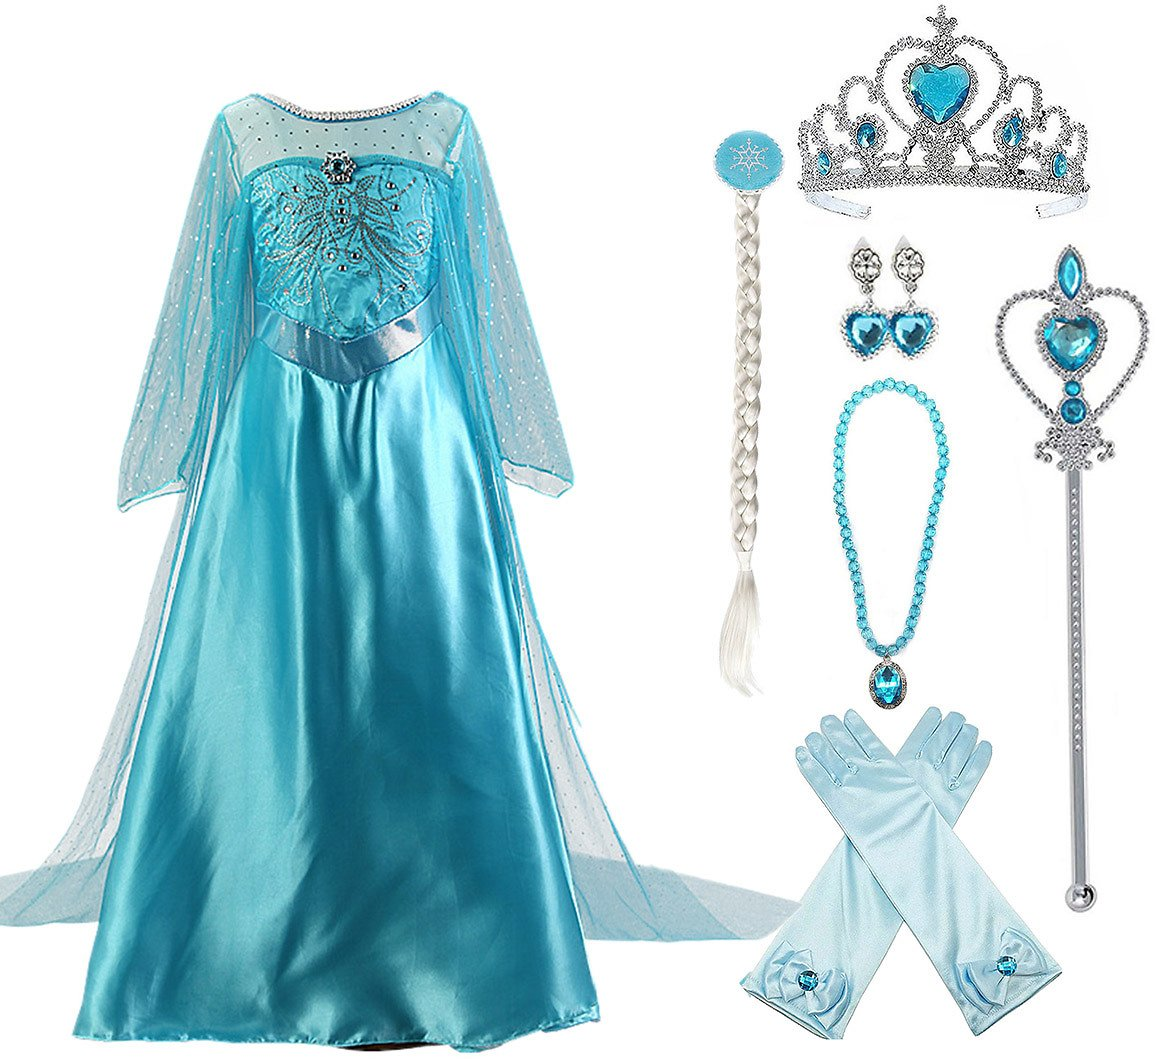 Snow Queen Elsa Princess Party Dress Little Girls Halloween Cosplay Costume with Accessories (2 Options)